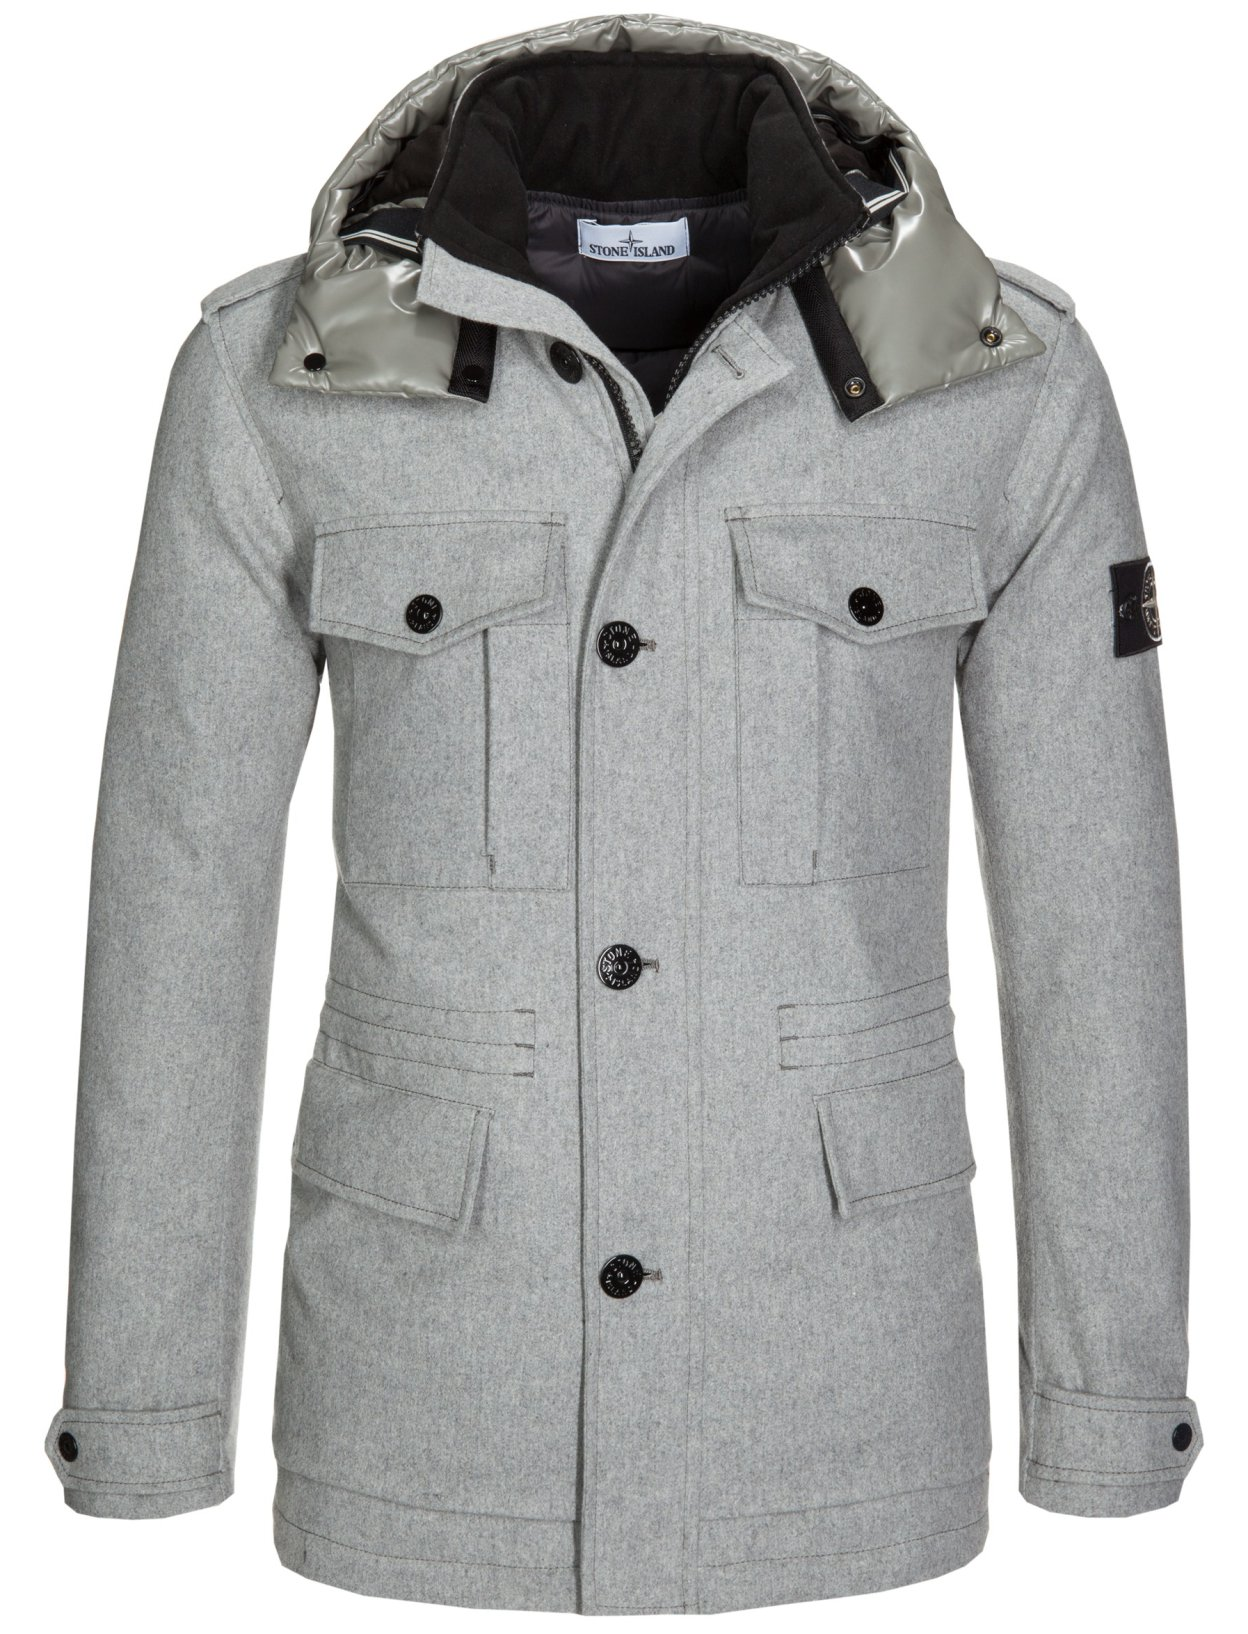 Stone Island Soft Shell: Stock Stone Island: Clothing, Shoes, Accessories, Bags